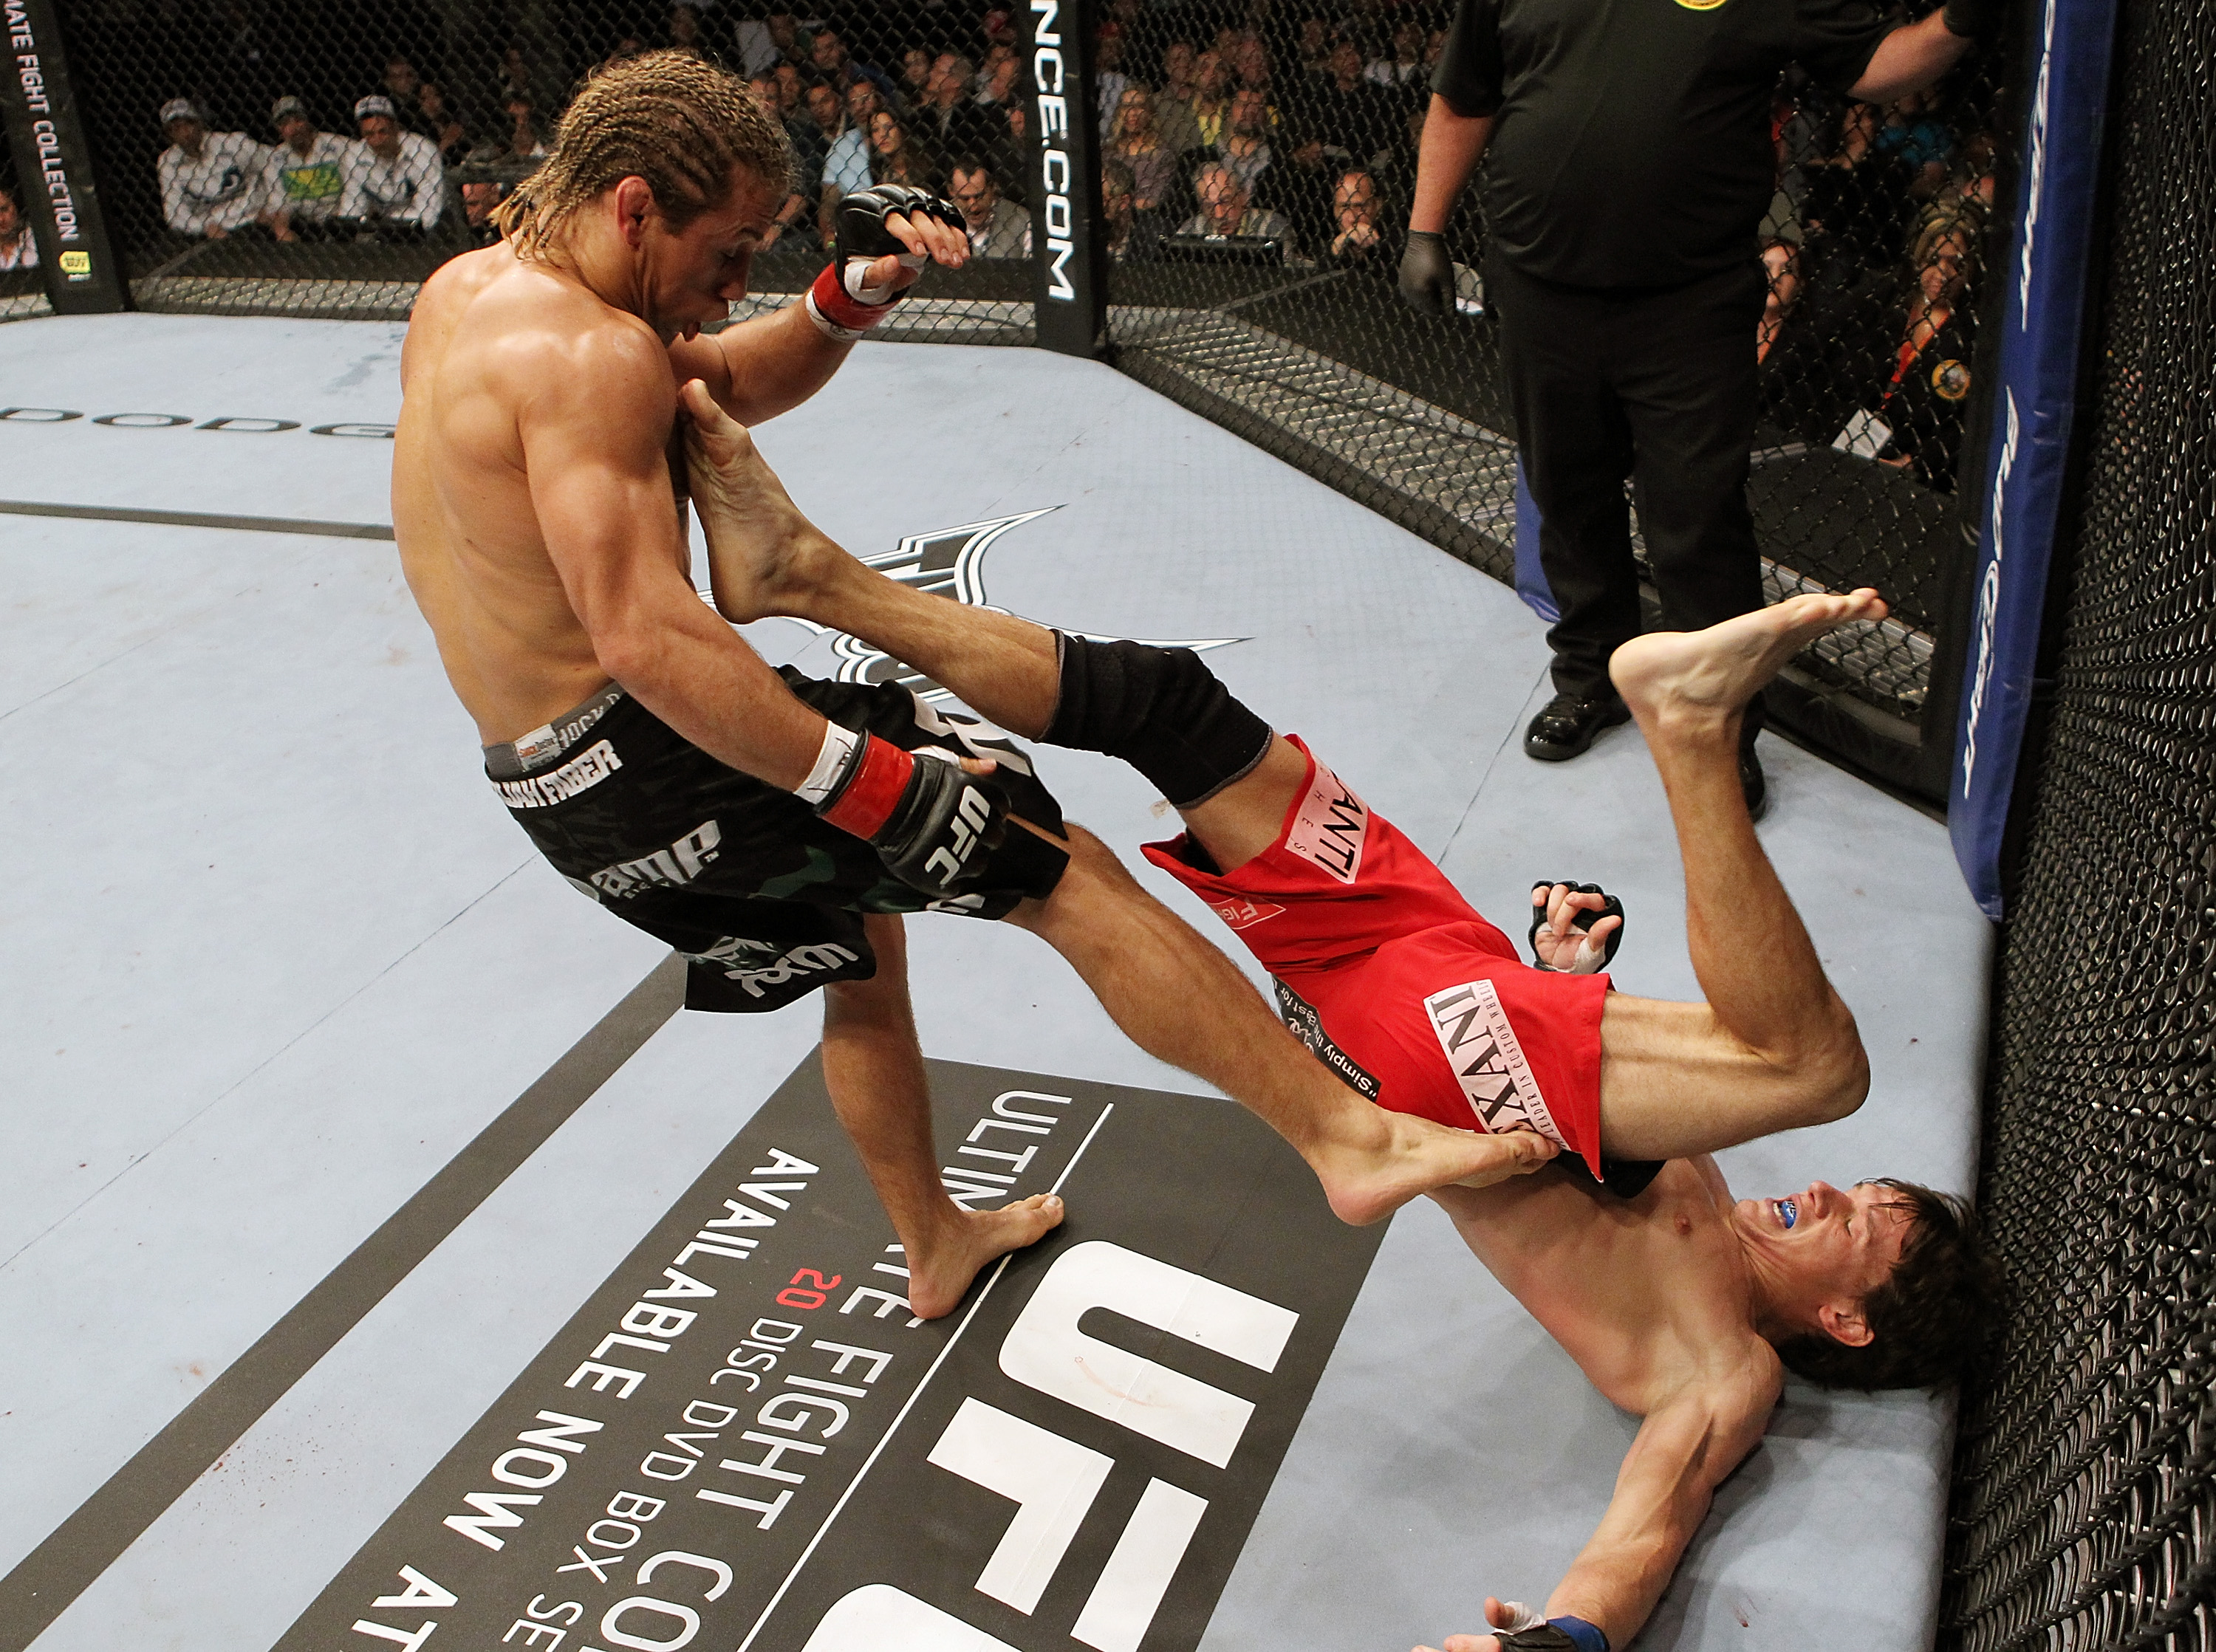 SAN JOSE, CA - NOVEMBER 19: (R-L) Brian Bowles kicks Urijah Faber during an UFC Bantamweight bout at the HP Pavillion on November 19, 2011 in San Jose, California.  (Photo by Josh Hedges/Zuffa LLC/Zuffa LLC via Getty Images)